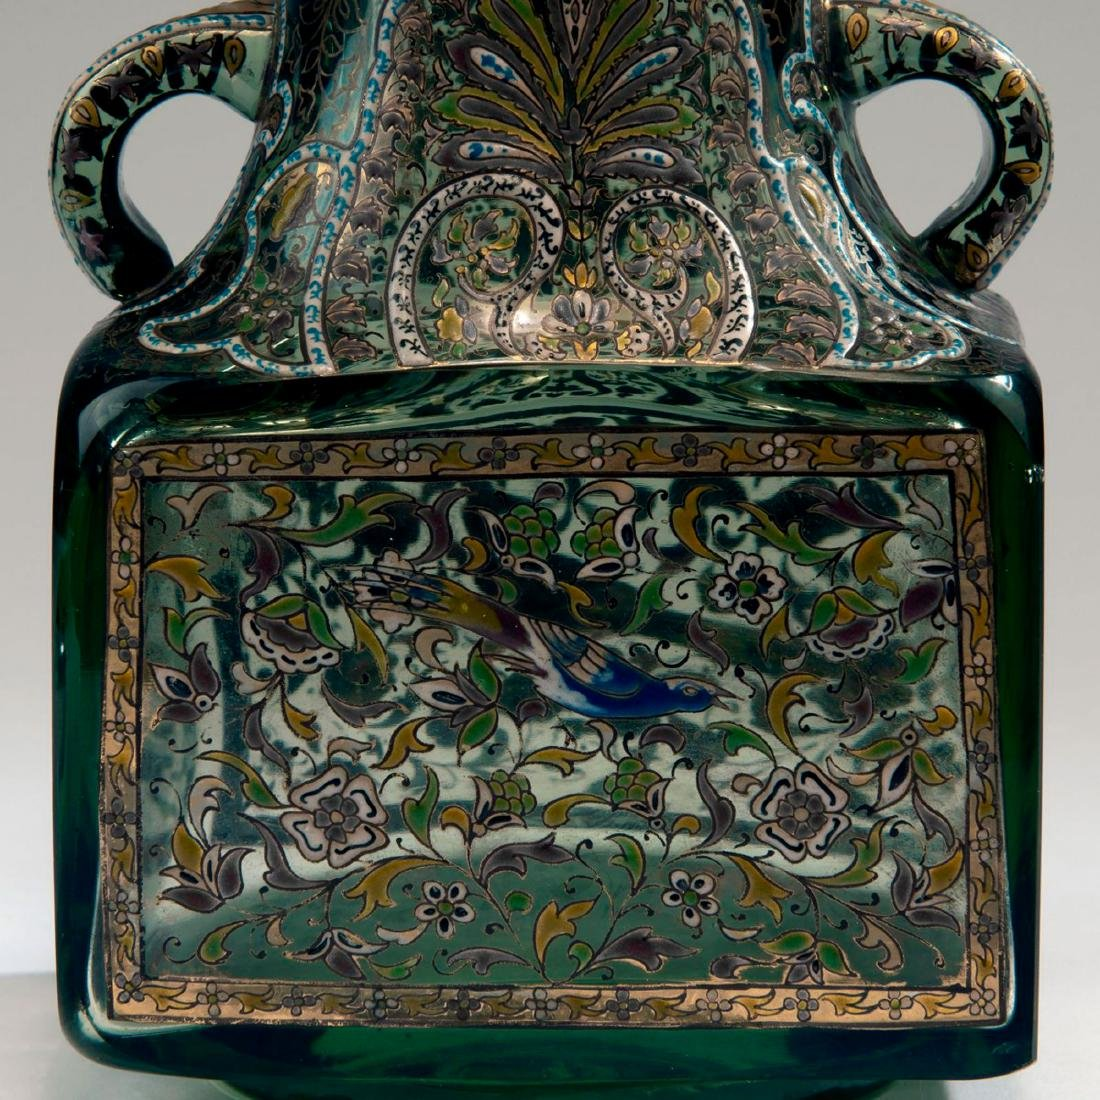 'Inspiration Persanne' vase with handles, c. 1880 - 4